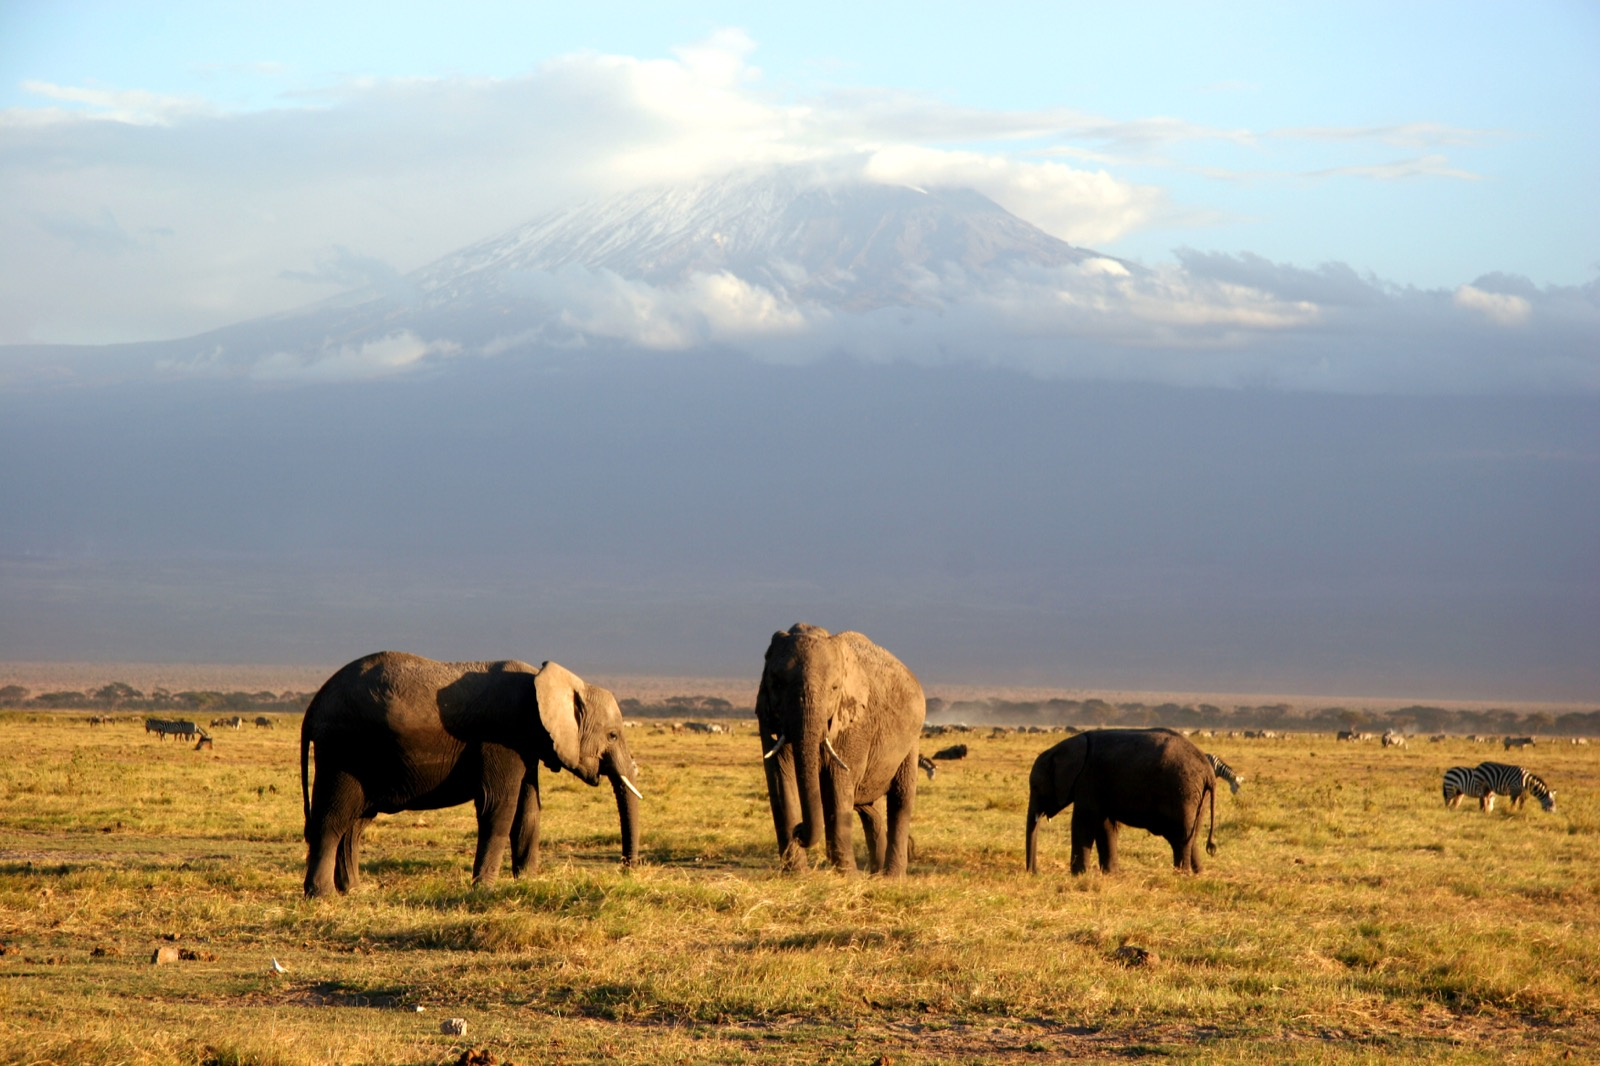 Elephants with Kilimanjaro